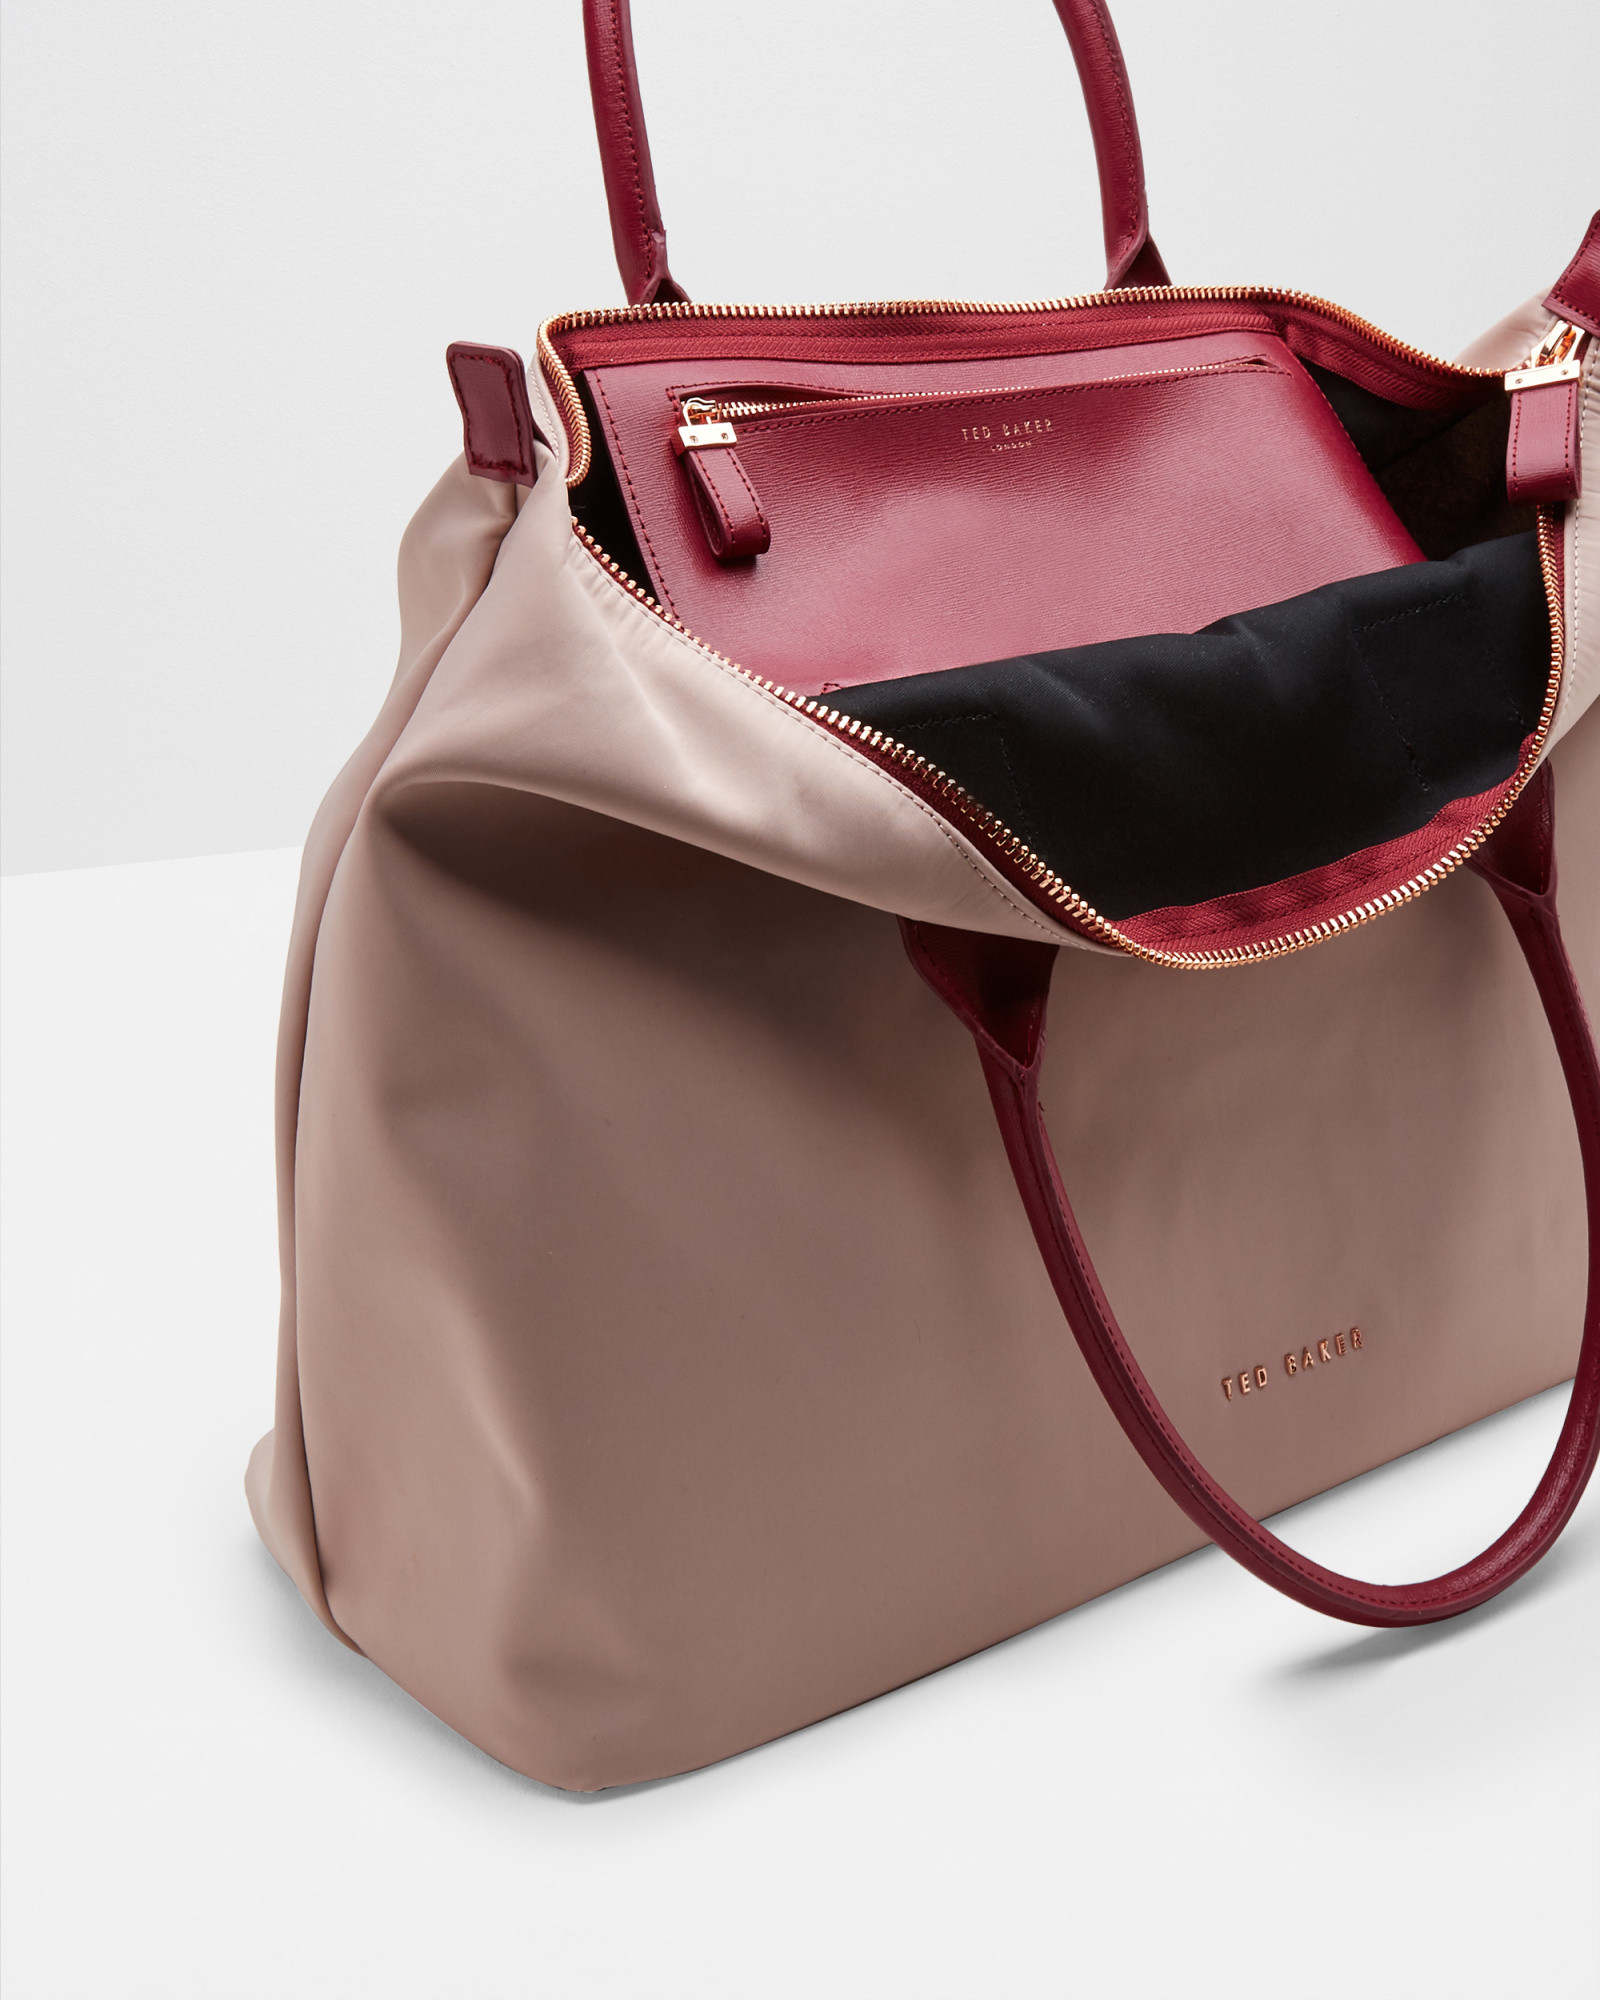 Ted Baker Leather Classic Large Tote Bag in Pink